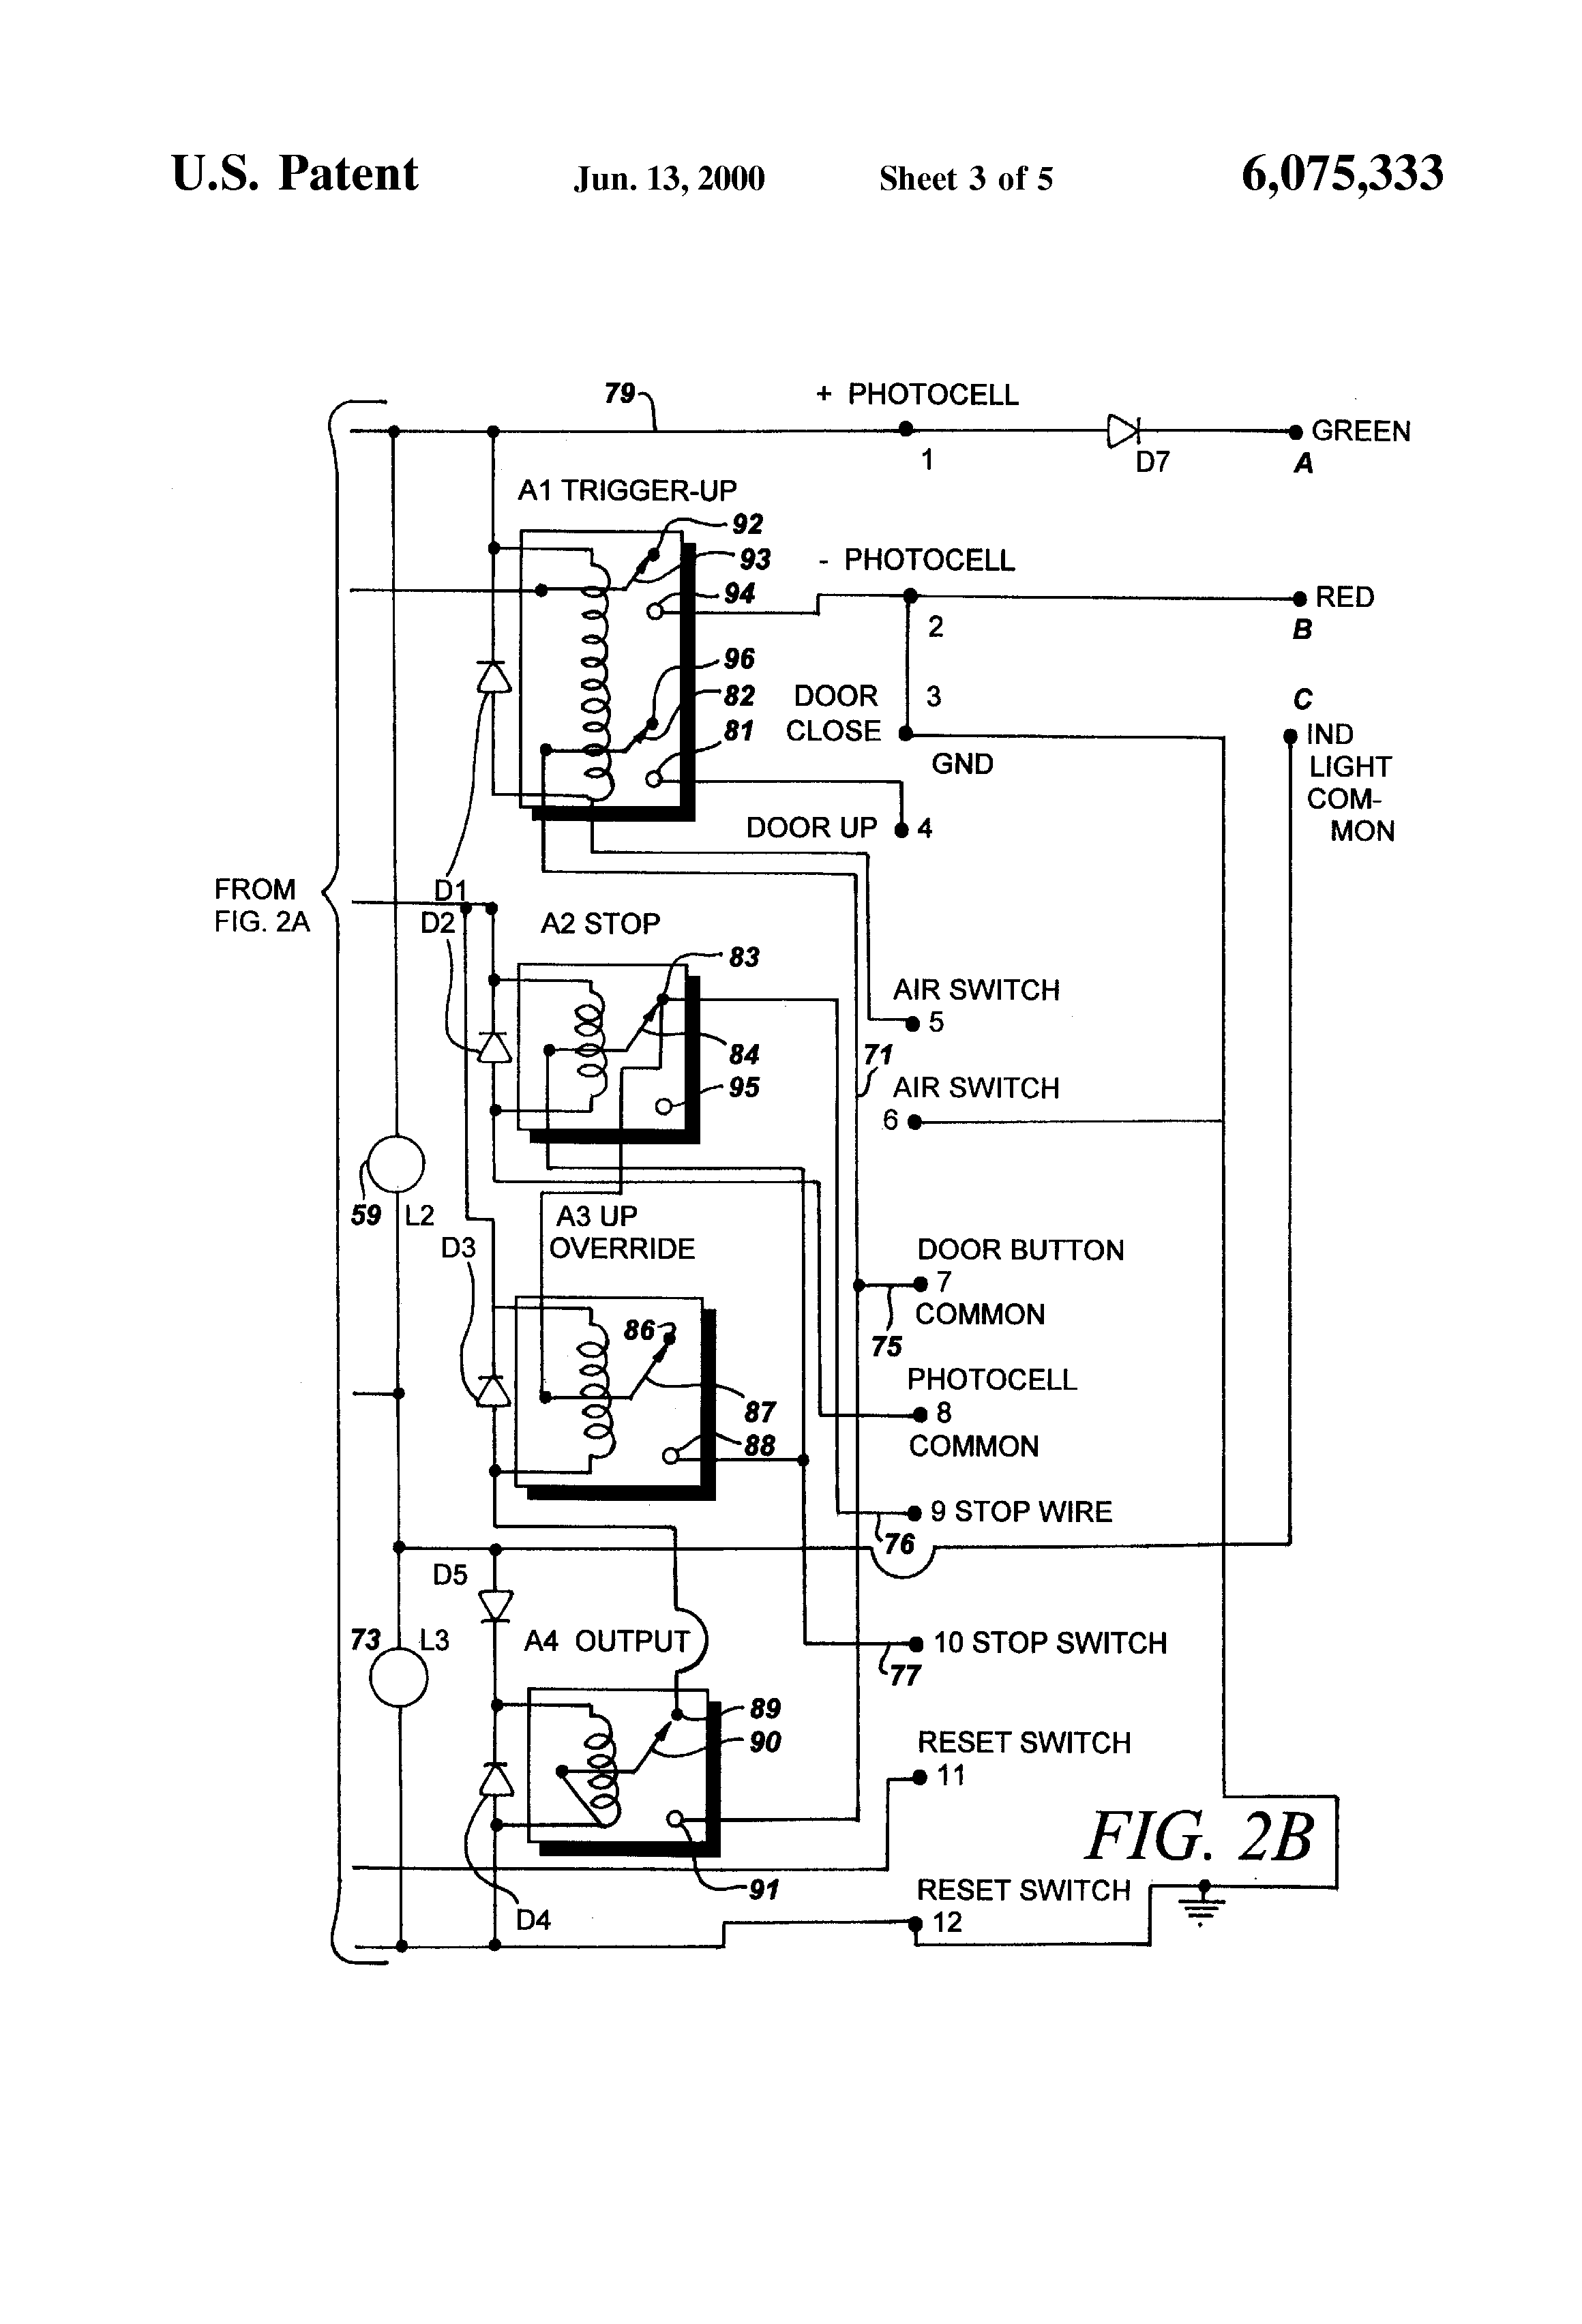 US6075333 3 patent us6075333 kit for retrofitting manually operated electric telectron rd14-6 wiring diagram at reclaimingppi.co